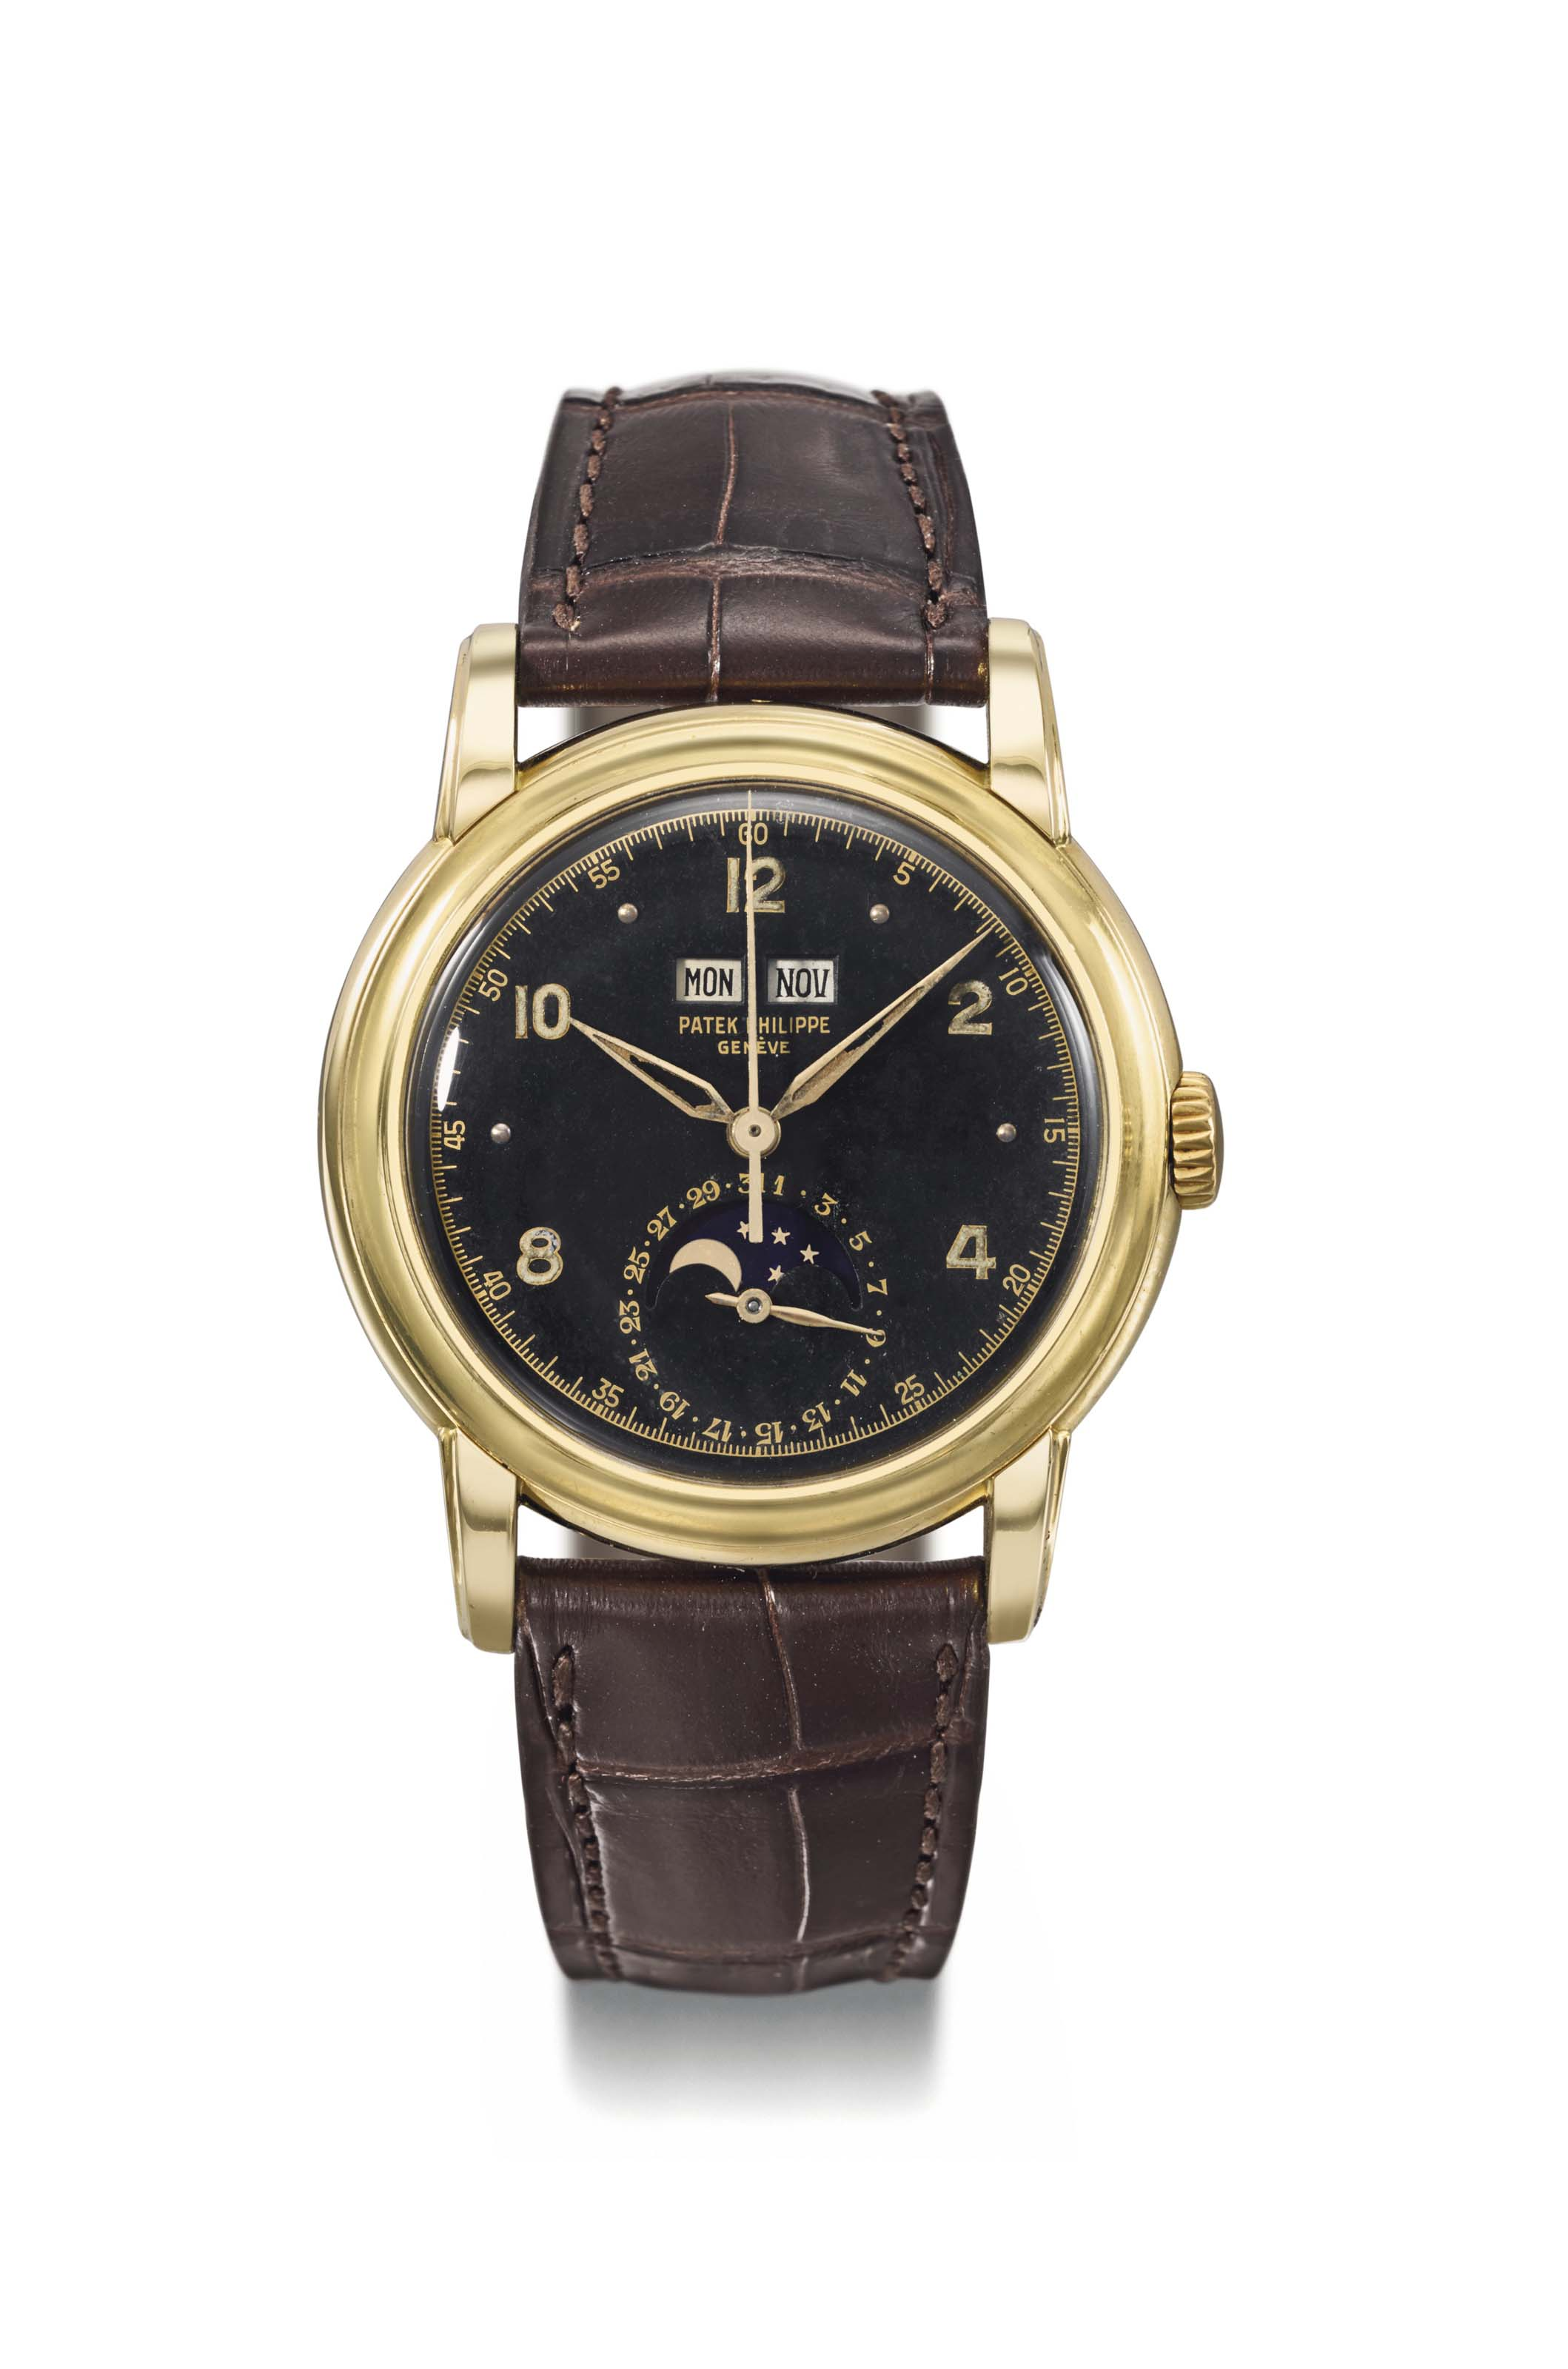 Patek Philippe. An exceptionally important, possibly unique and previously unknown 18K gold perpetual calendar wristwatch with sweep centre seconds, moon phases, black luminous military-style dial, luminous Alpha hands, engraved case back, formerly the property of His Majesty, King of Kings, Emperor Haile Selassie I of Ethiopia